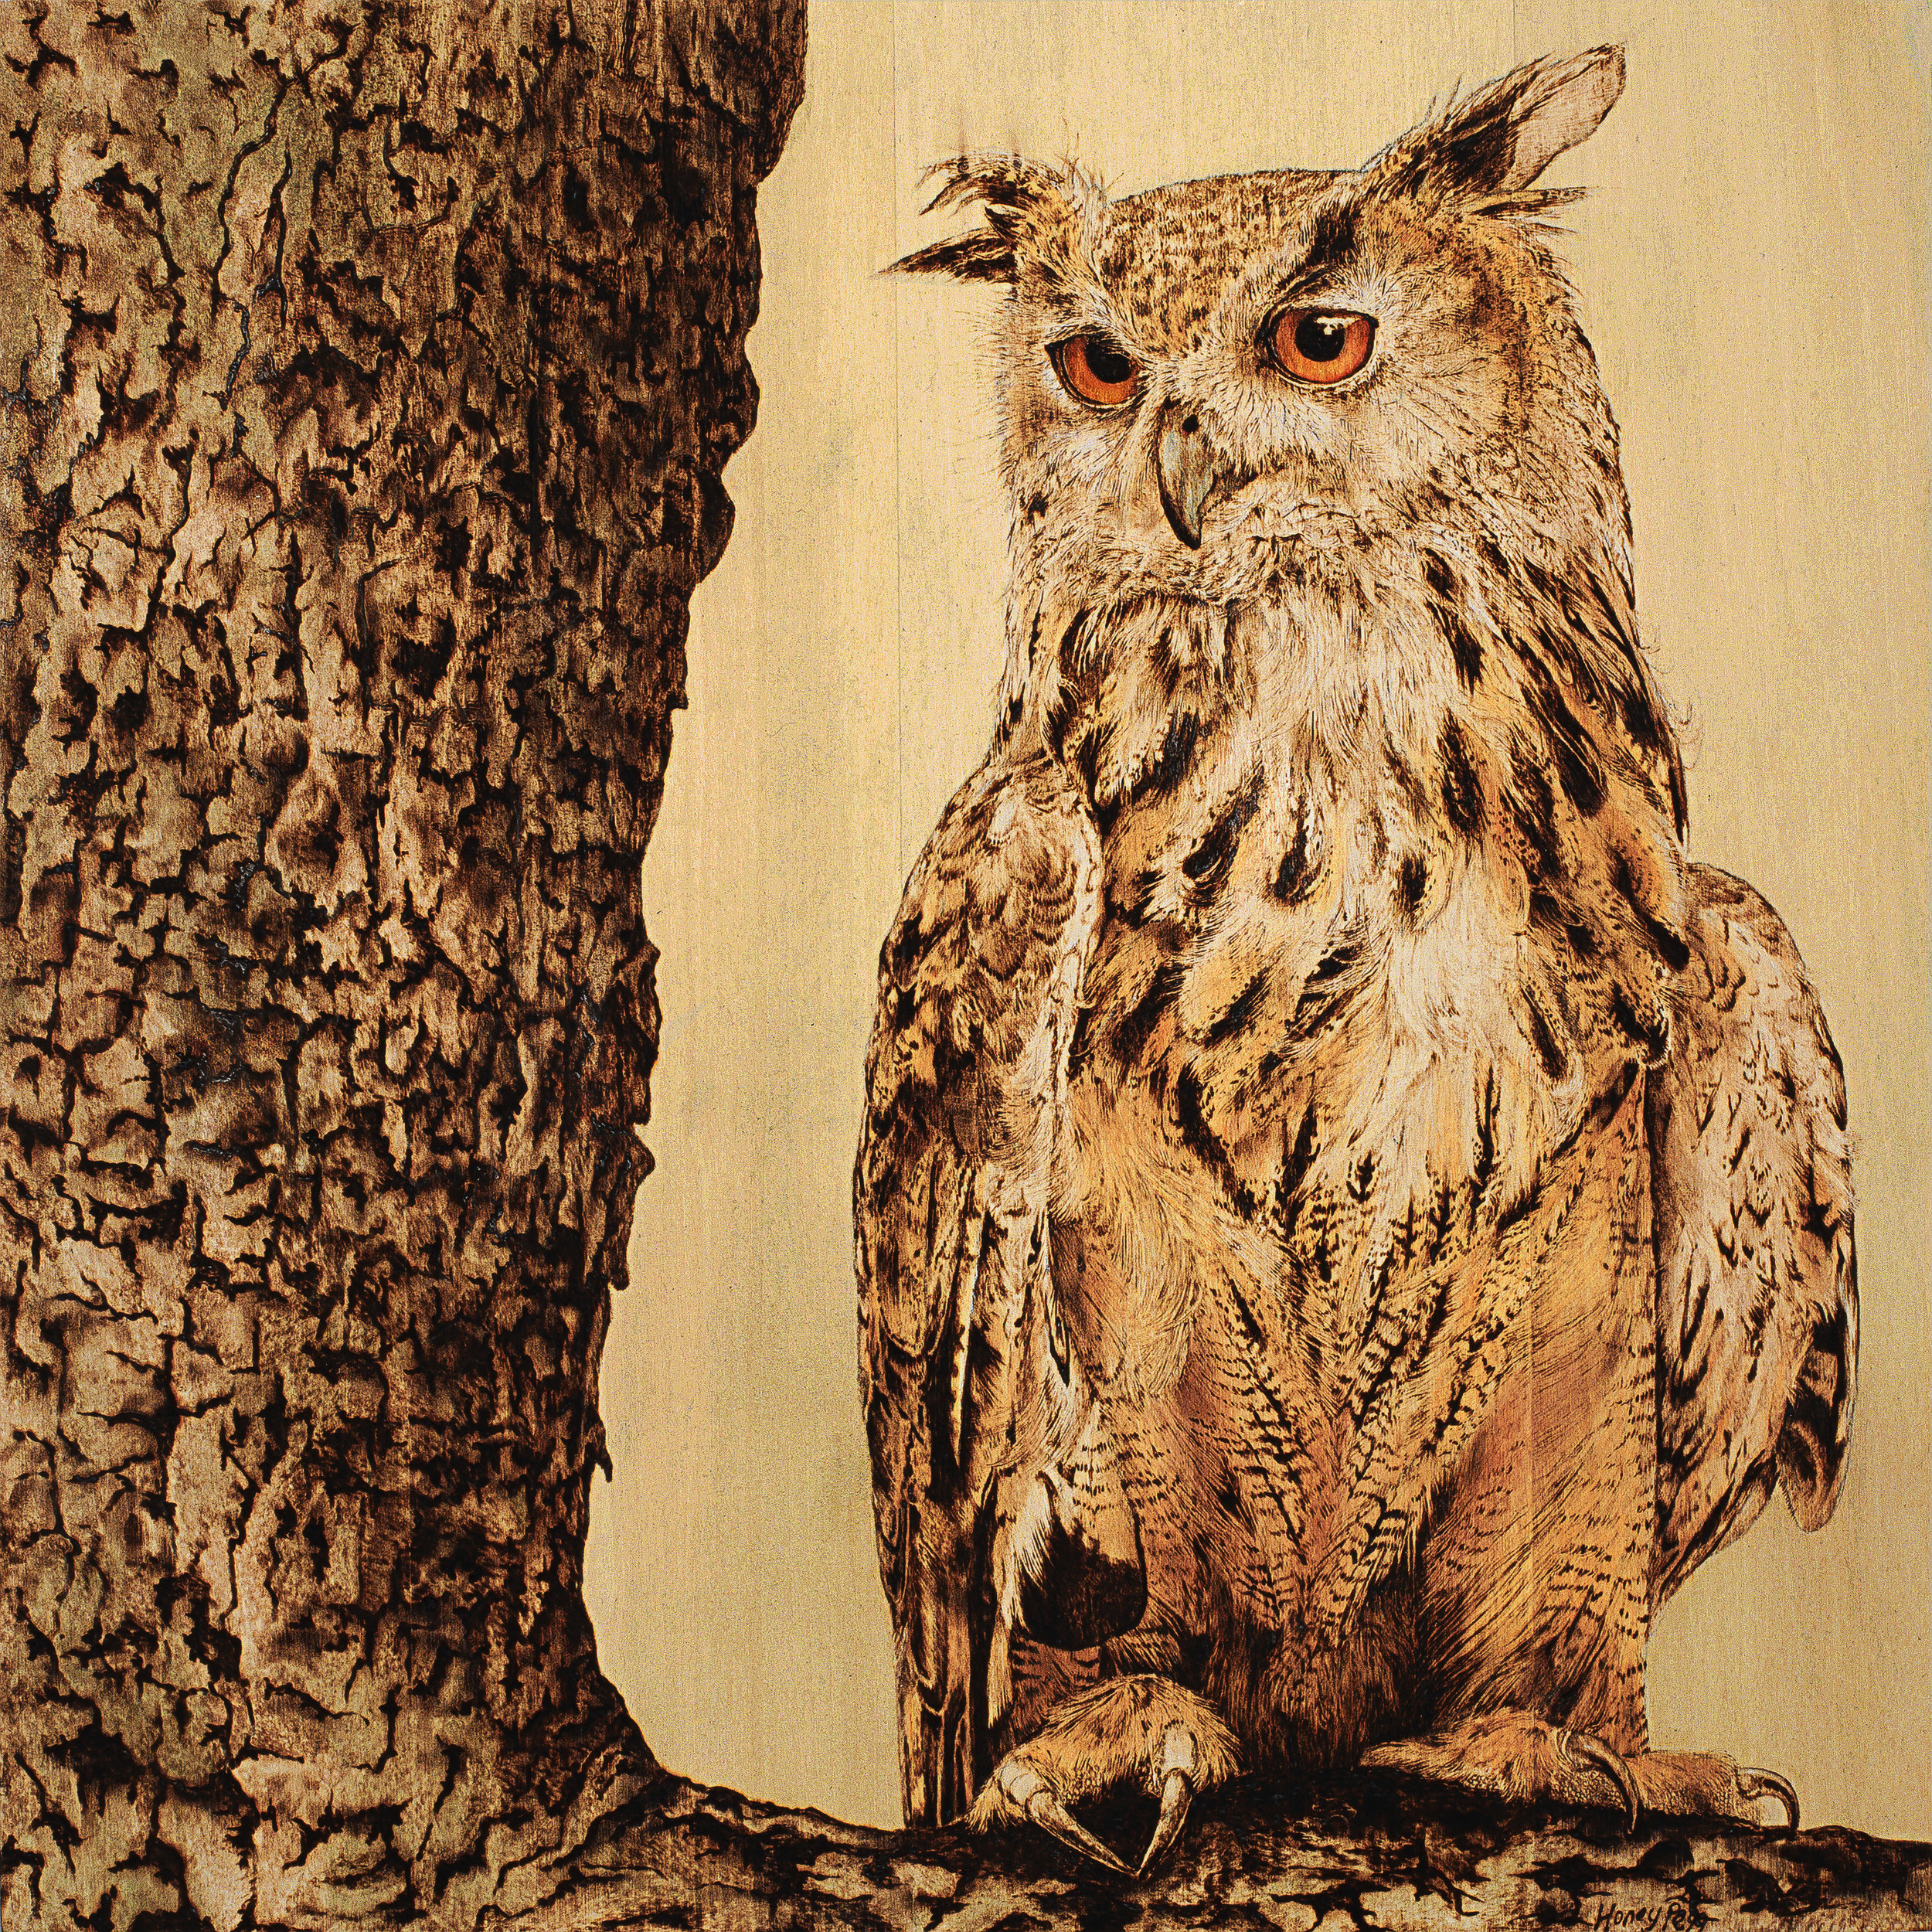 'Eagle Owl' by Honey Pegg